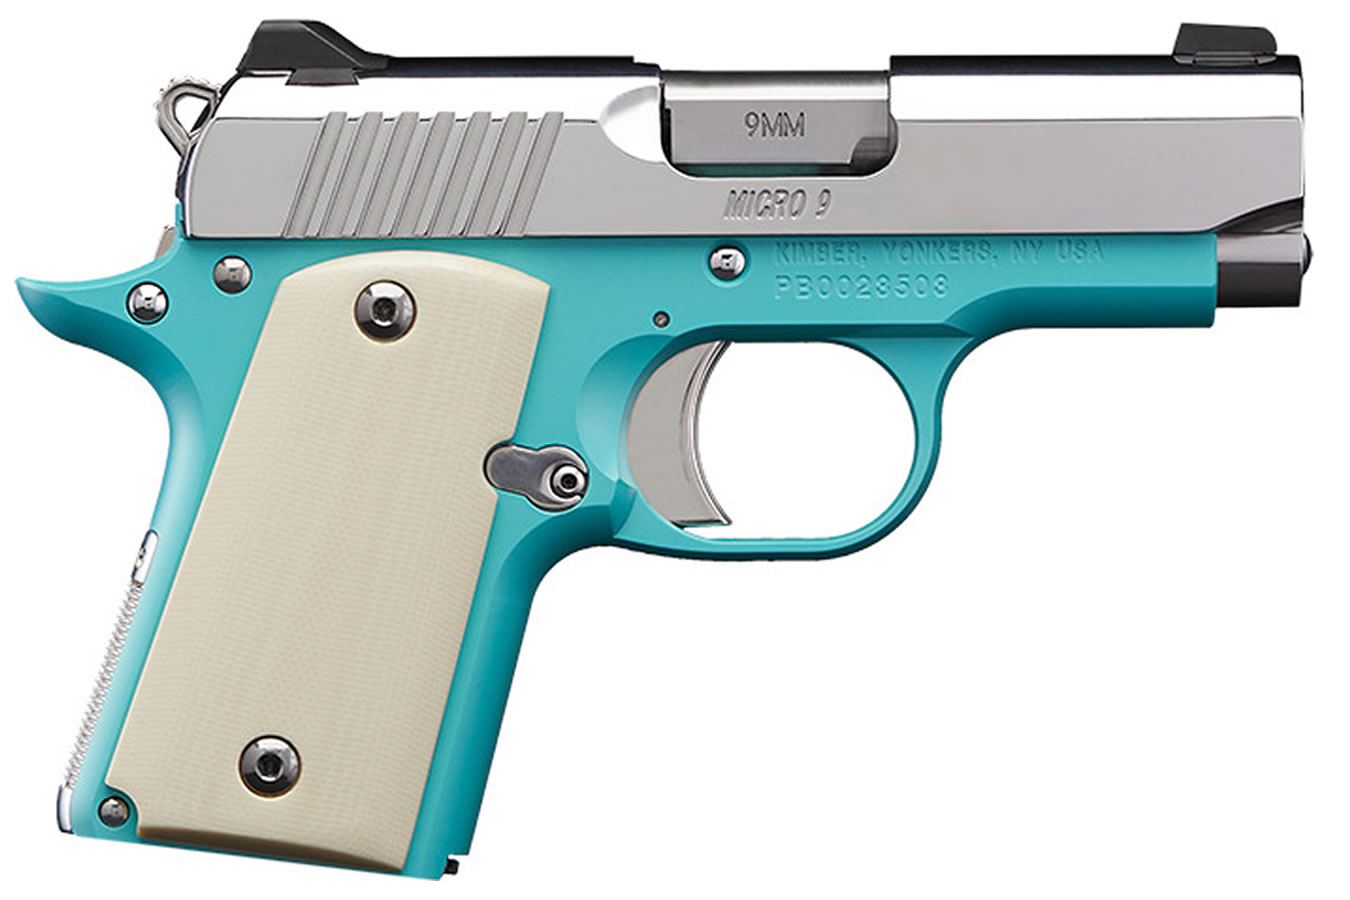 MICRO 9 BEL AIR 9MM CARRY CONCEAL PISTOL